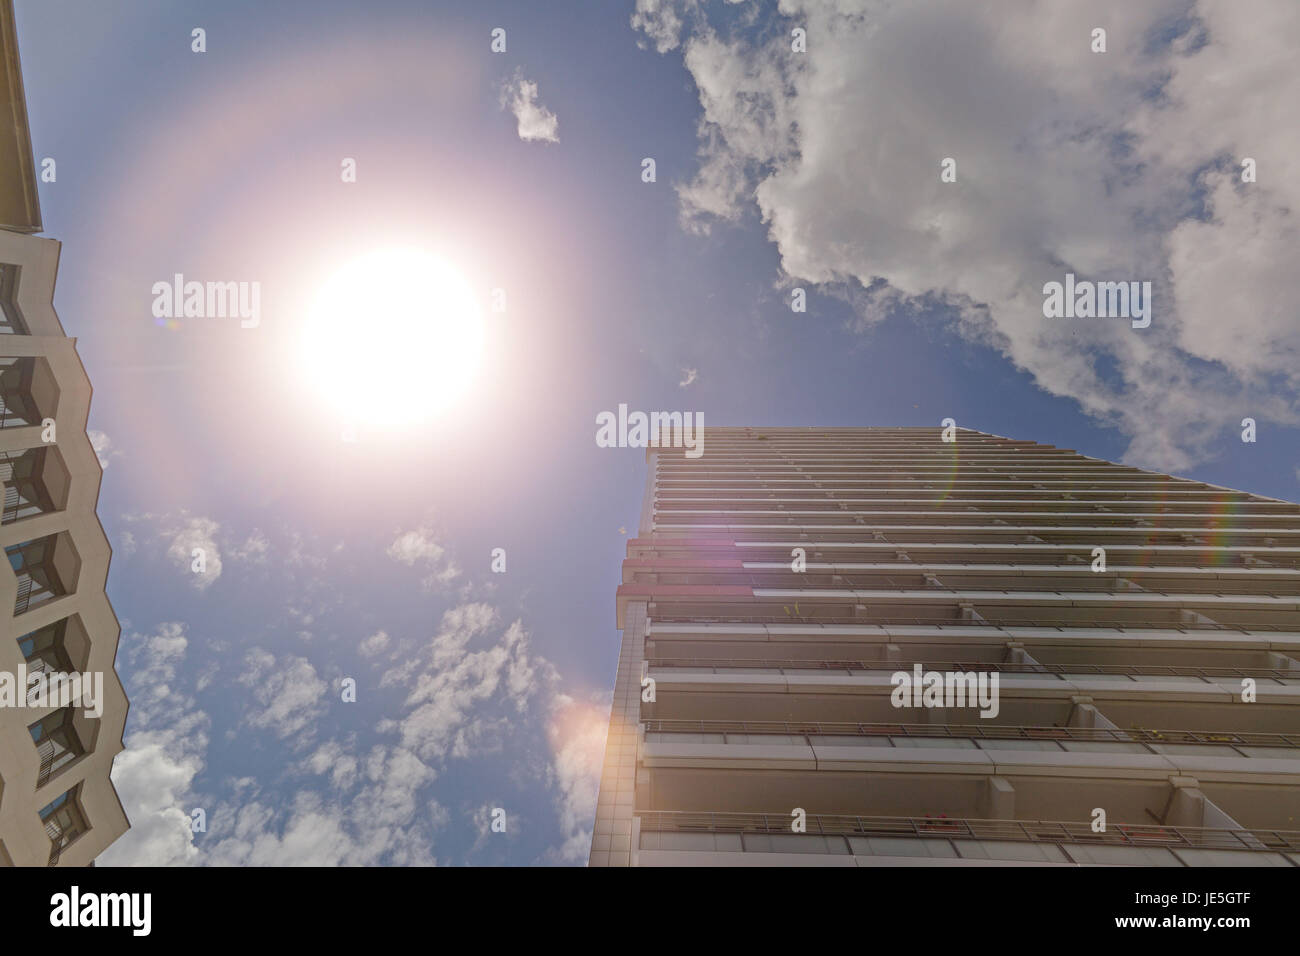 The facade of a high building with some windows closed - Stock Image